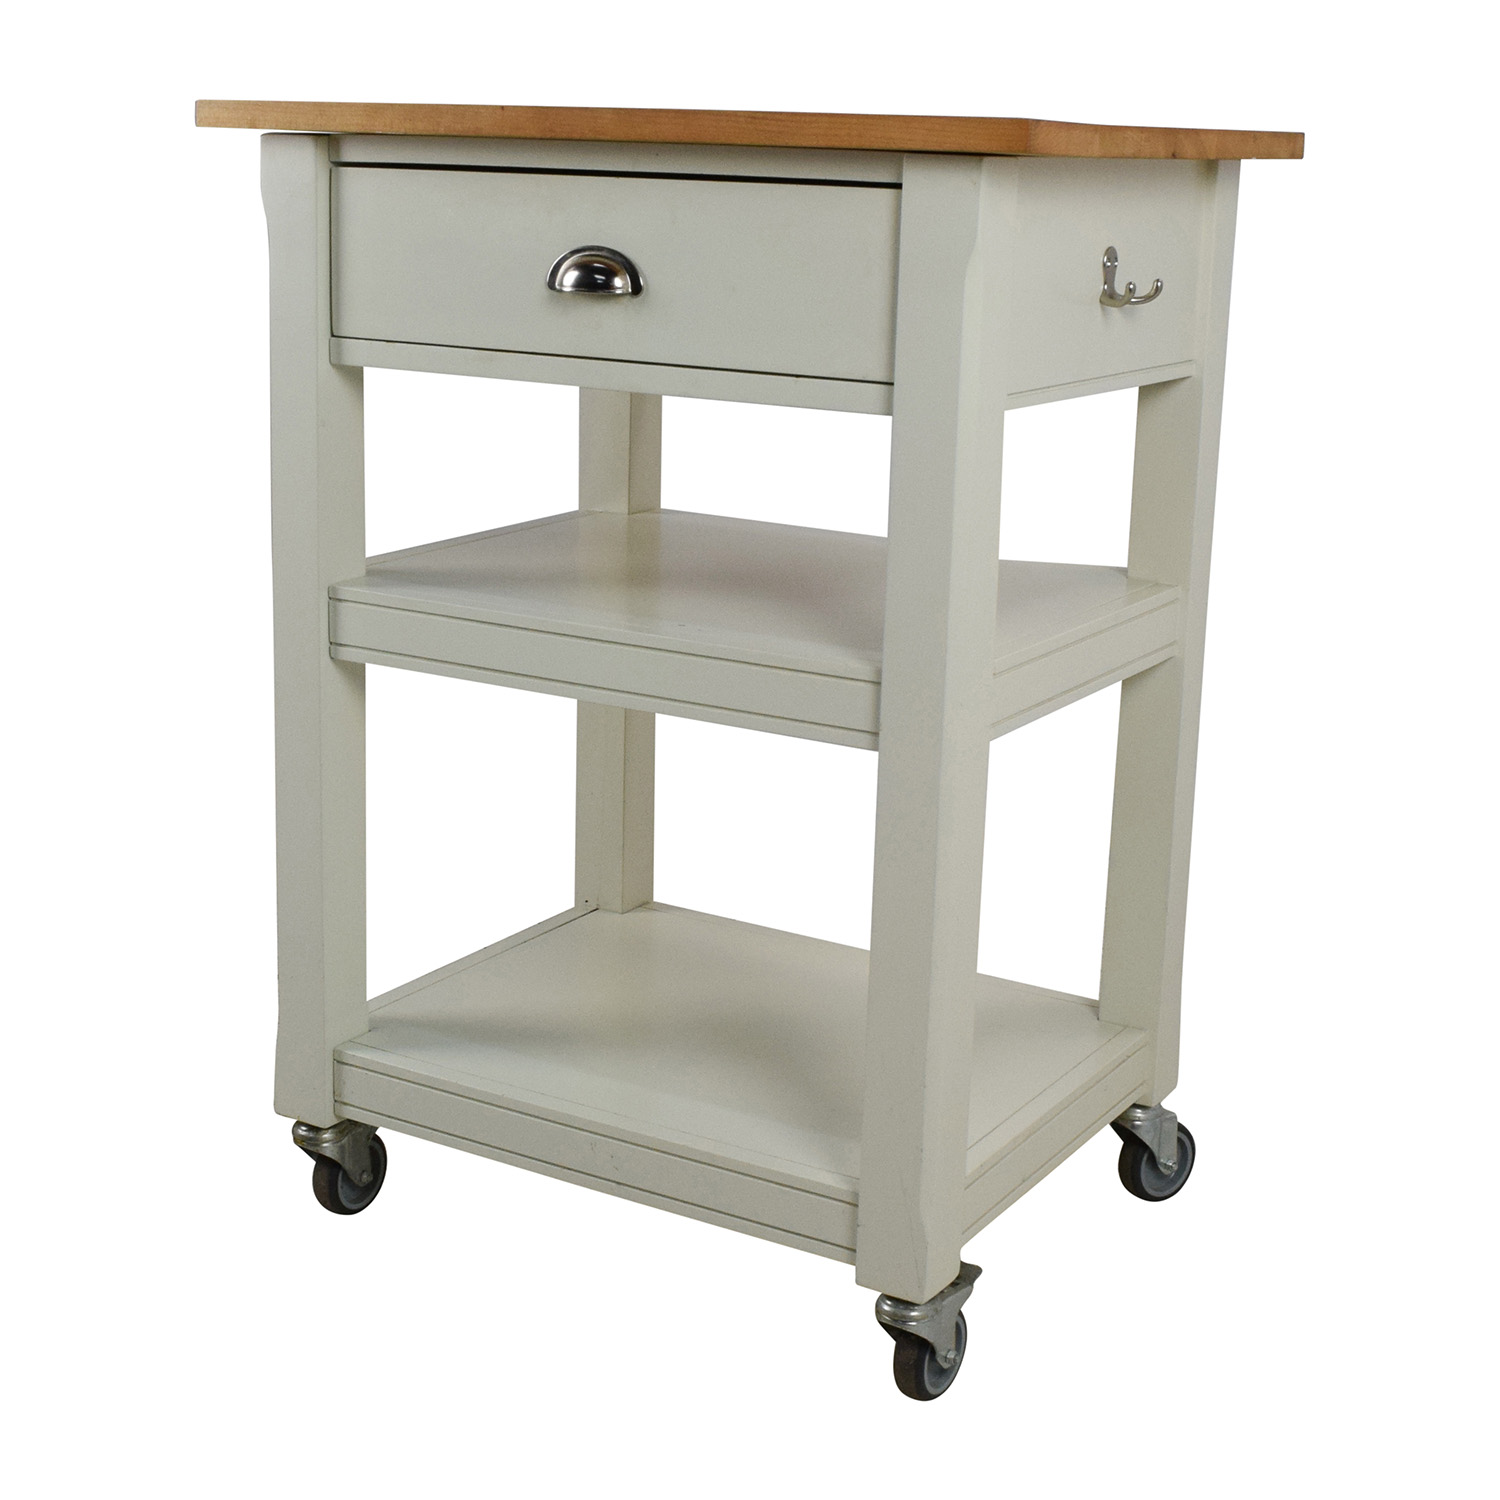 second hand rolling kitchen cart with cutting board kitchen cutting table Tables shop Rolling Kitchen Cart with Cutting Board online